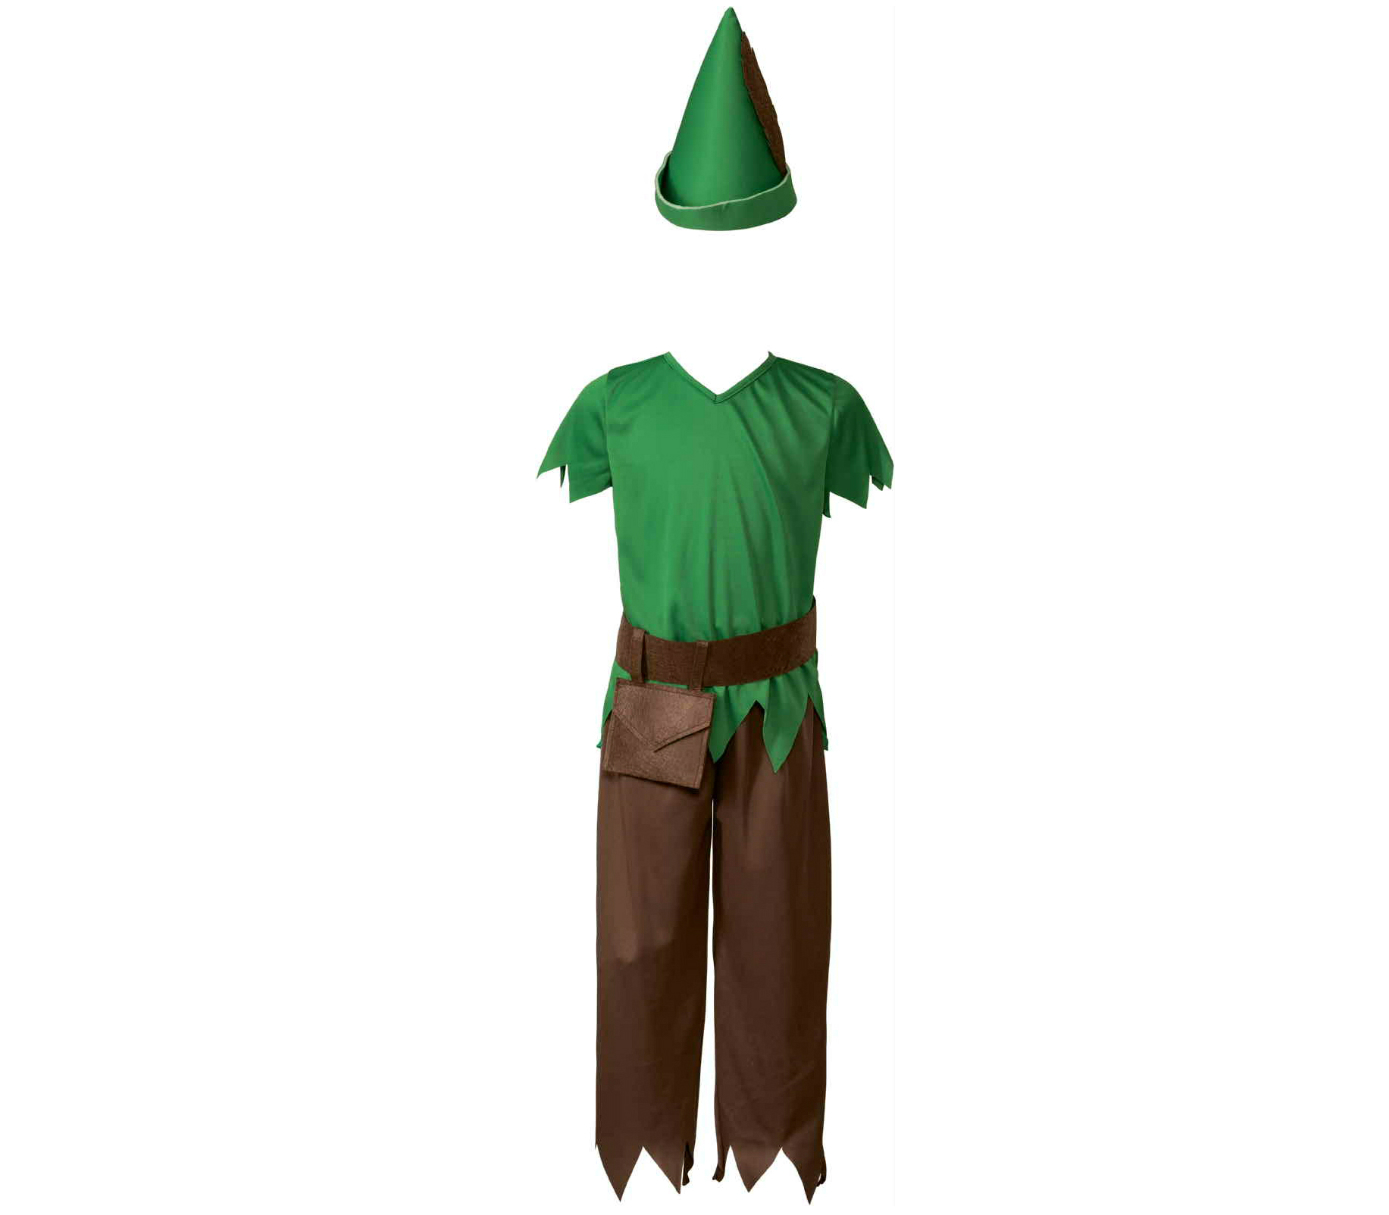 fa3d0c7291057 The best World Book Day costumes you can buy for under £15